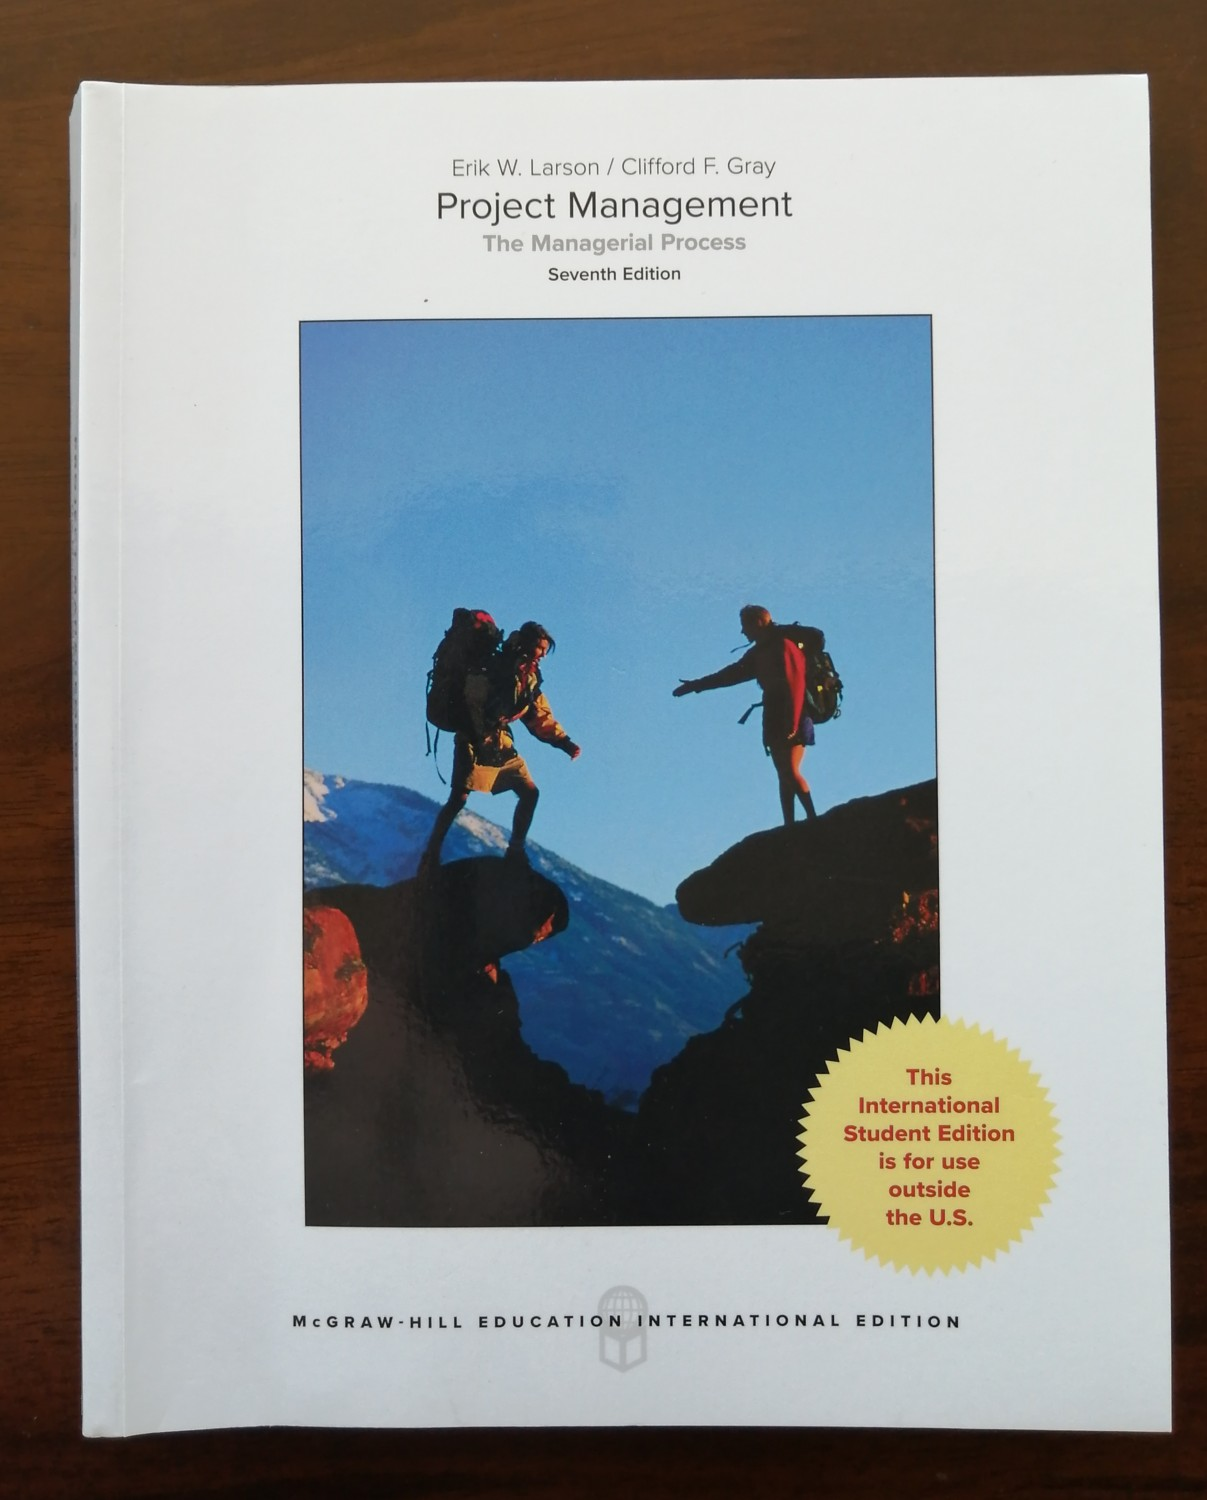 Project Management The Managerial Process 7th edition Larson & Gray